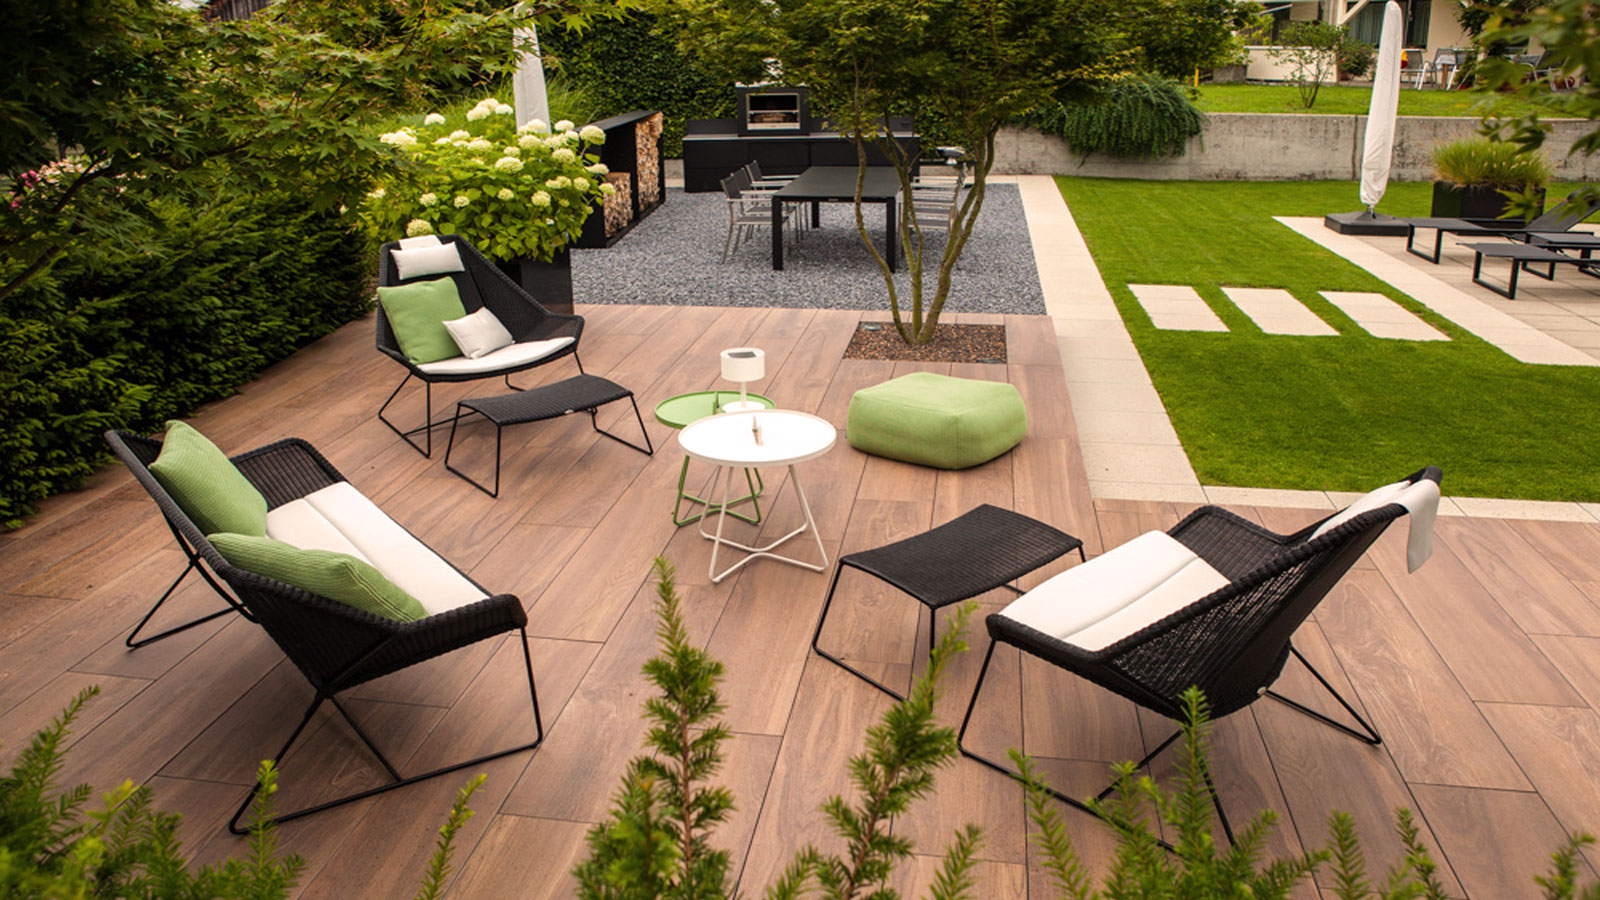 Garden furniture and garden design by Zweifel Terrazza AG